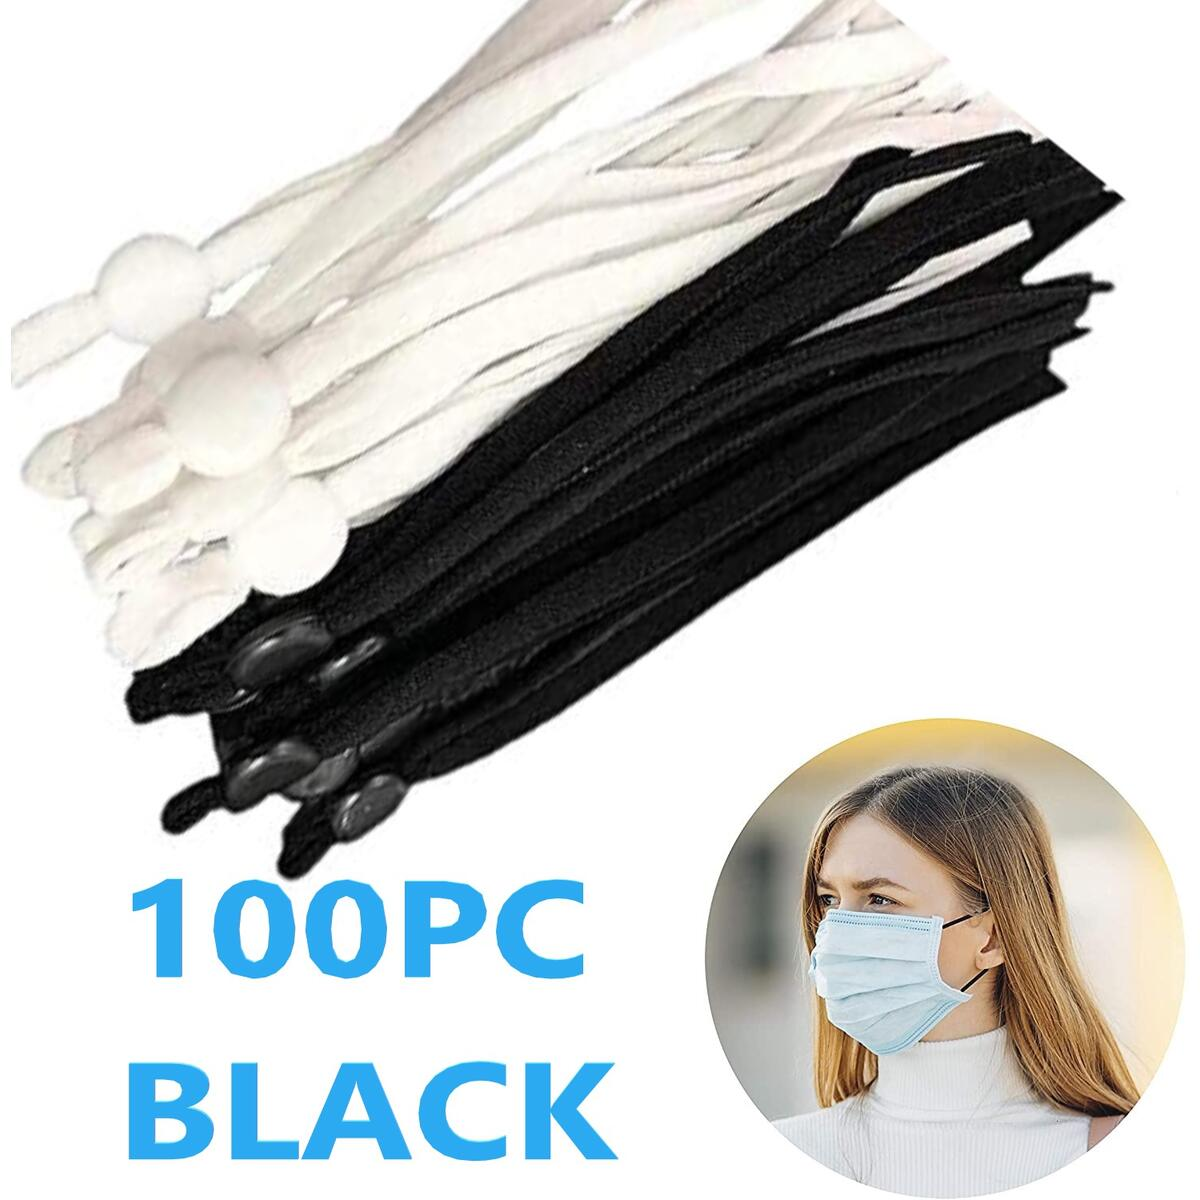 100 Pcs BLACK 1/4 Inch Sewing Elastic Band Stretchy Ear Loops Straps with Adjustable Buckle Silicone Cord Lock Toggles for Drawstrings, Making Supplies Elastic String for Masks